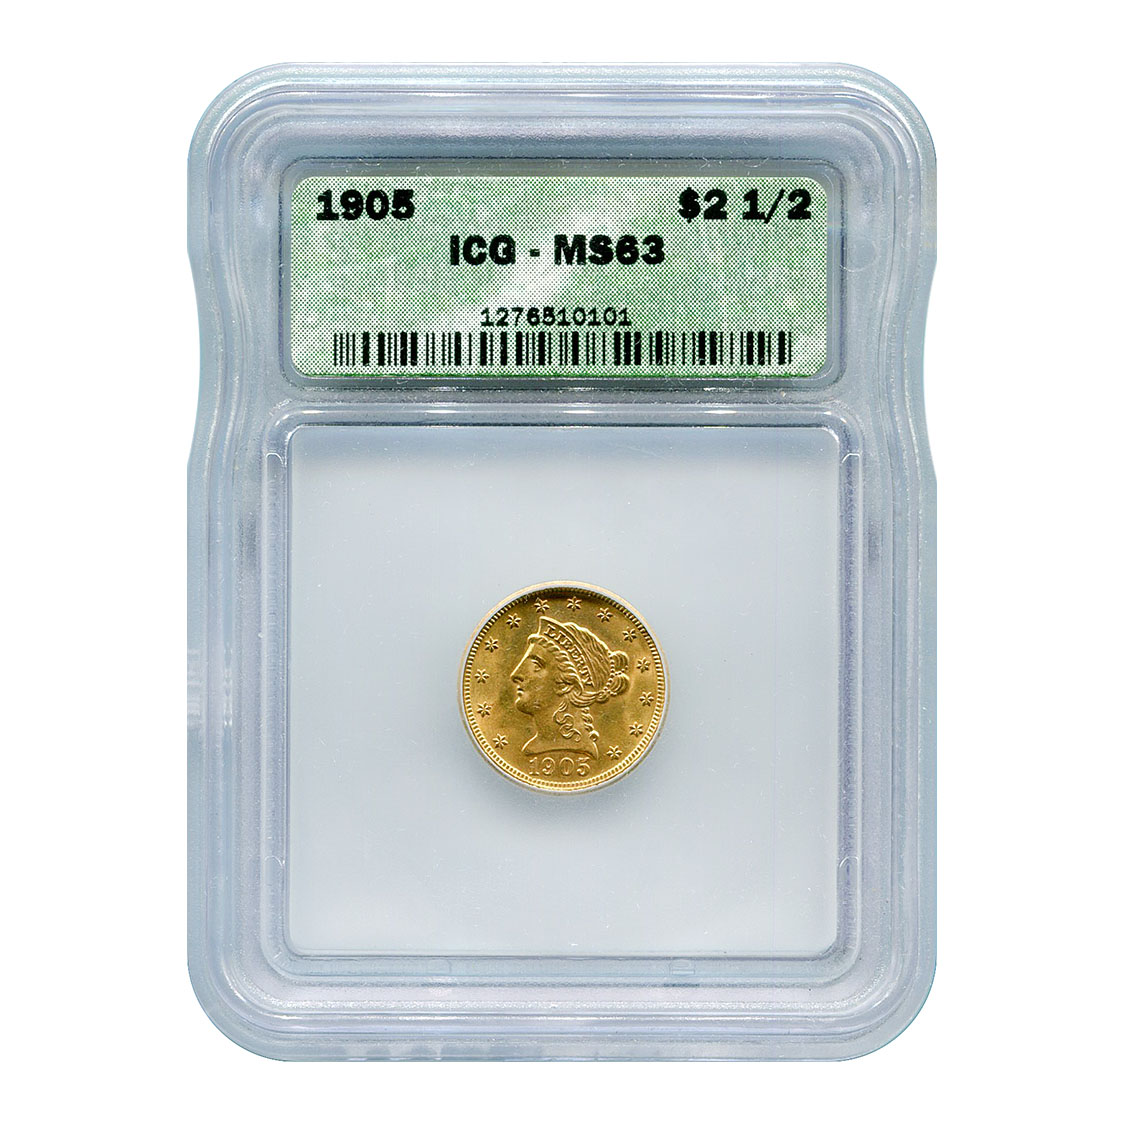 Certified $2.5 Gold Liberty 1905 MS63 ICG